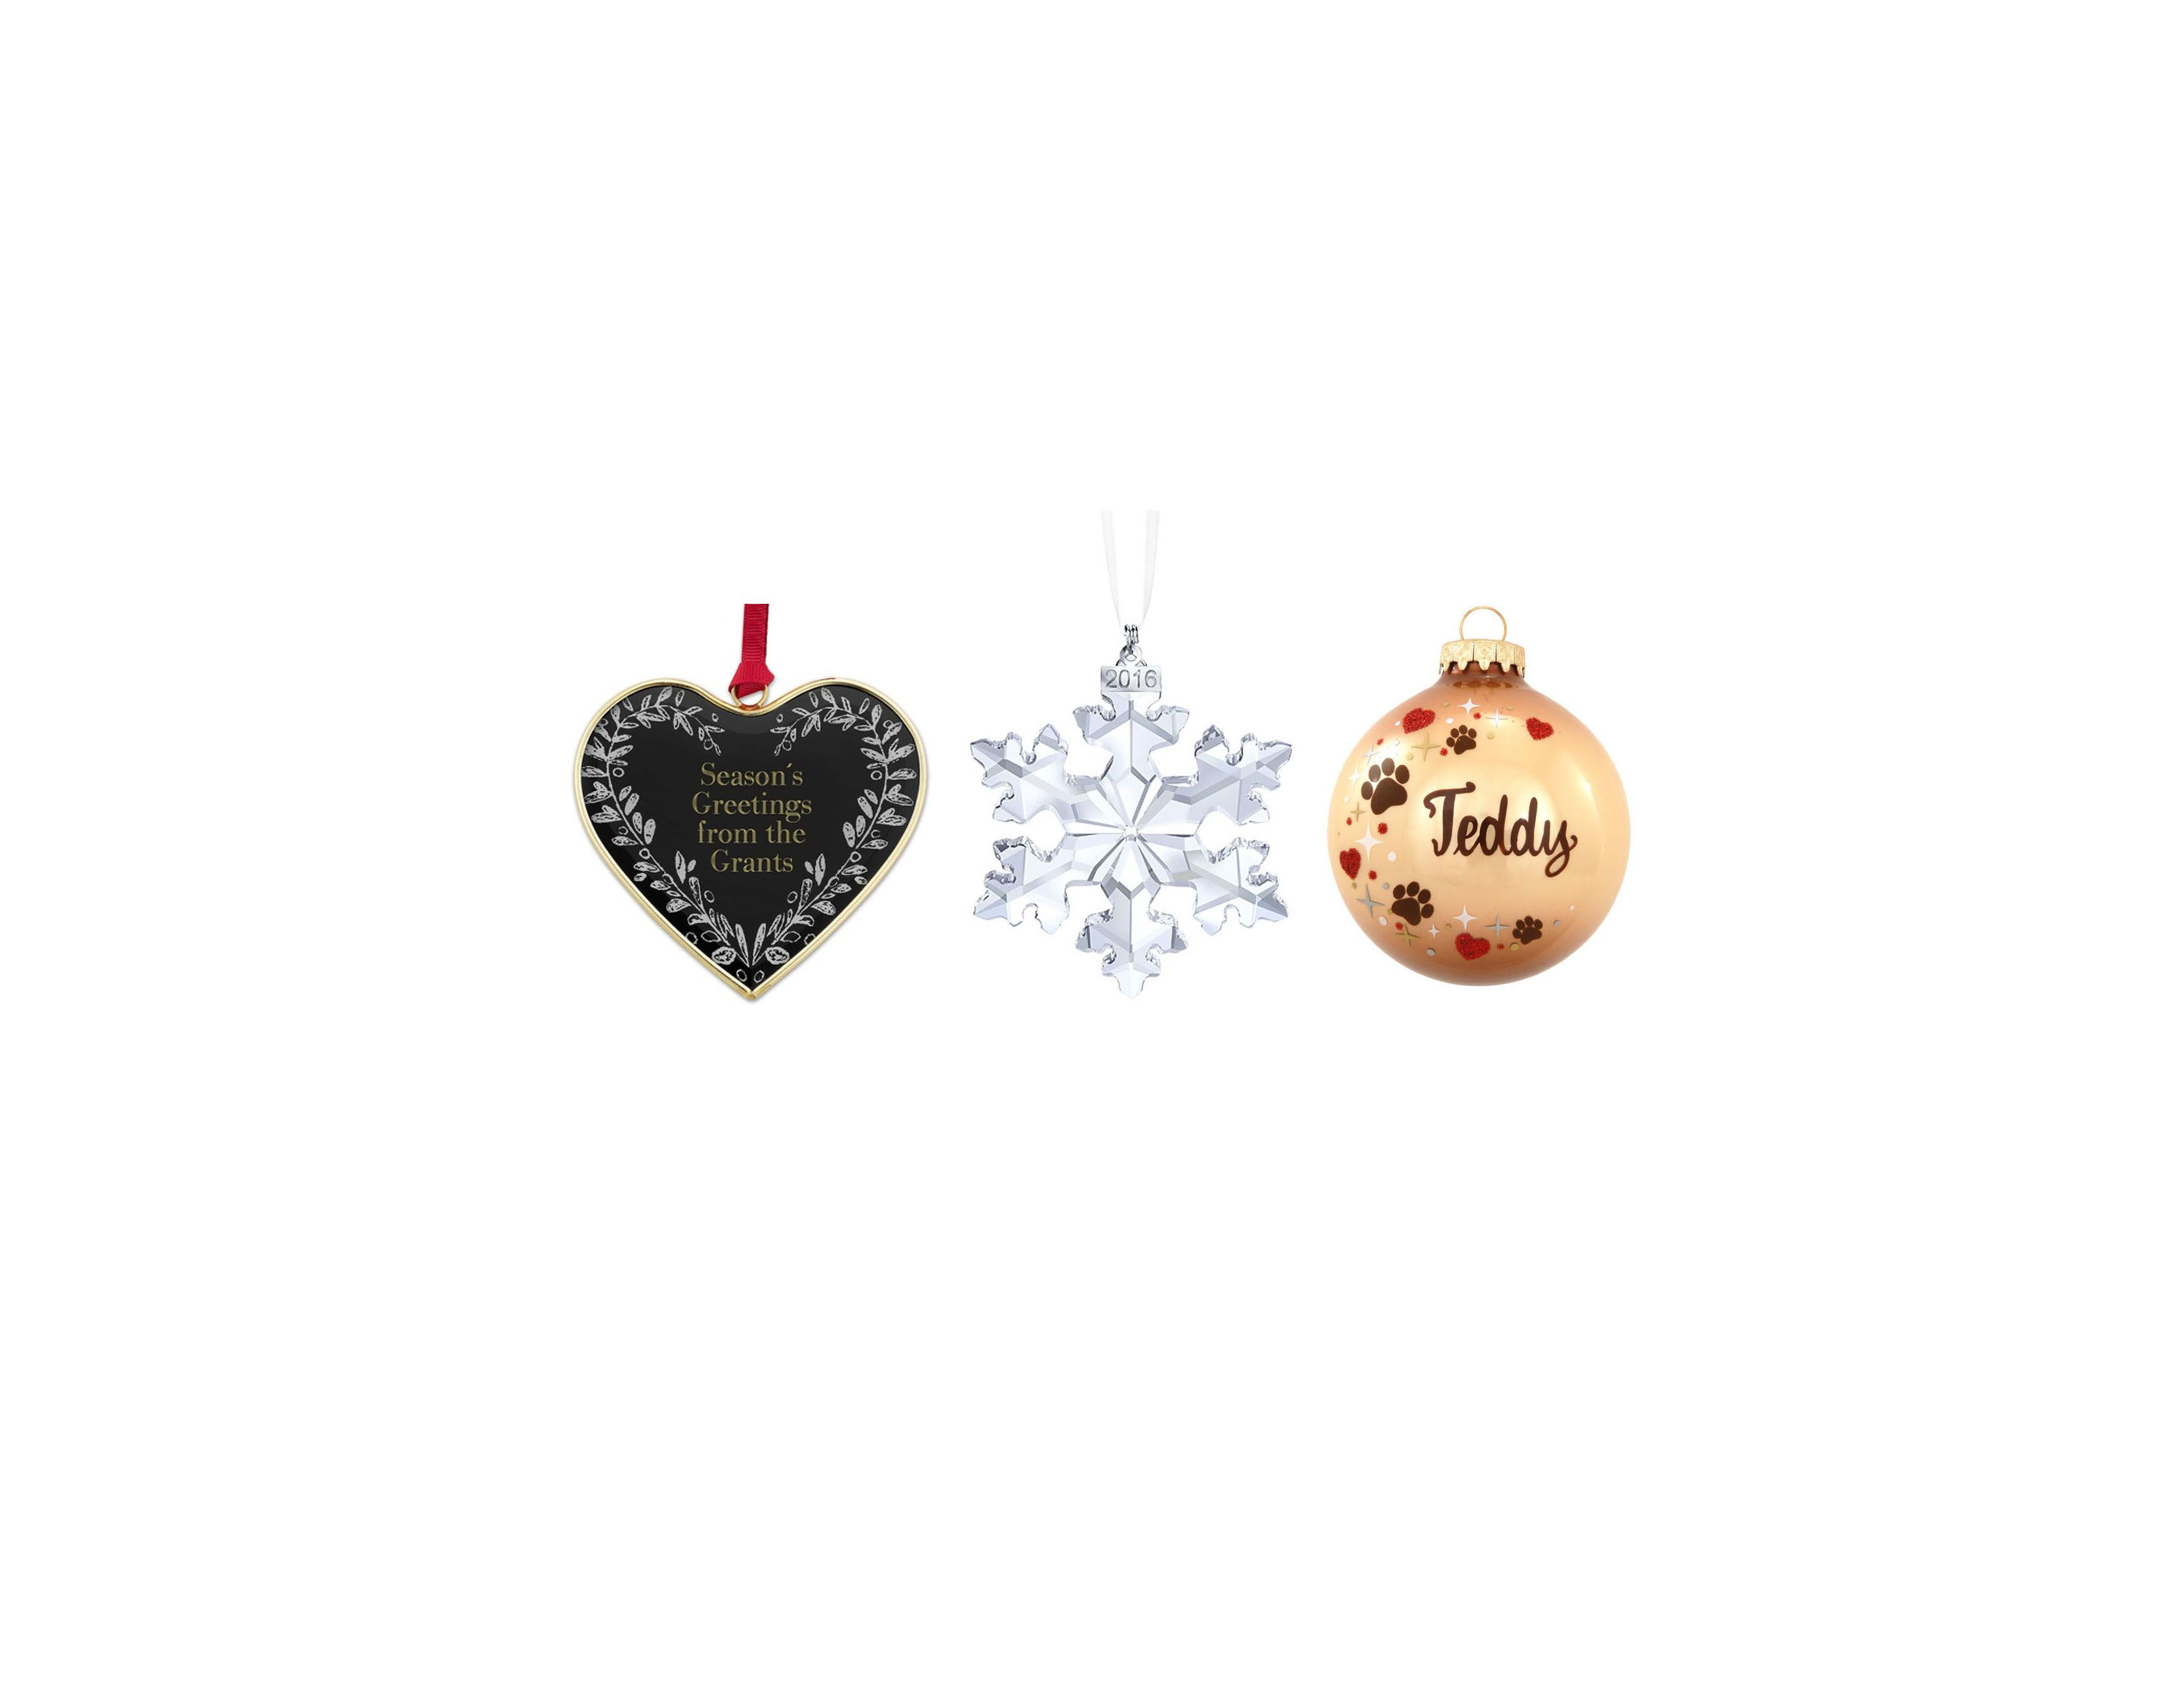 15 Personalized Christmas Ornaments - Best Ideas for Family ...